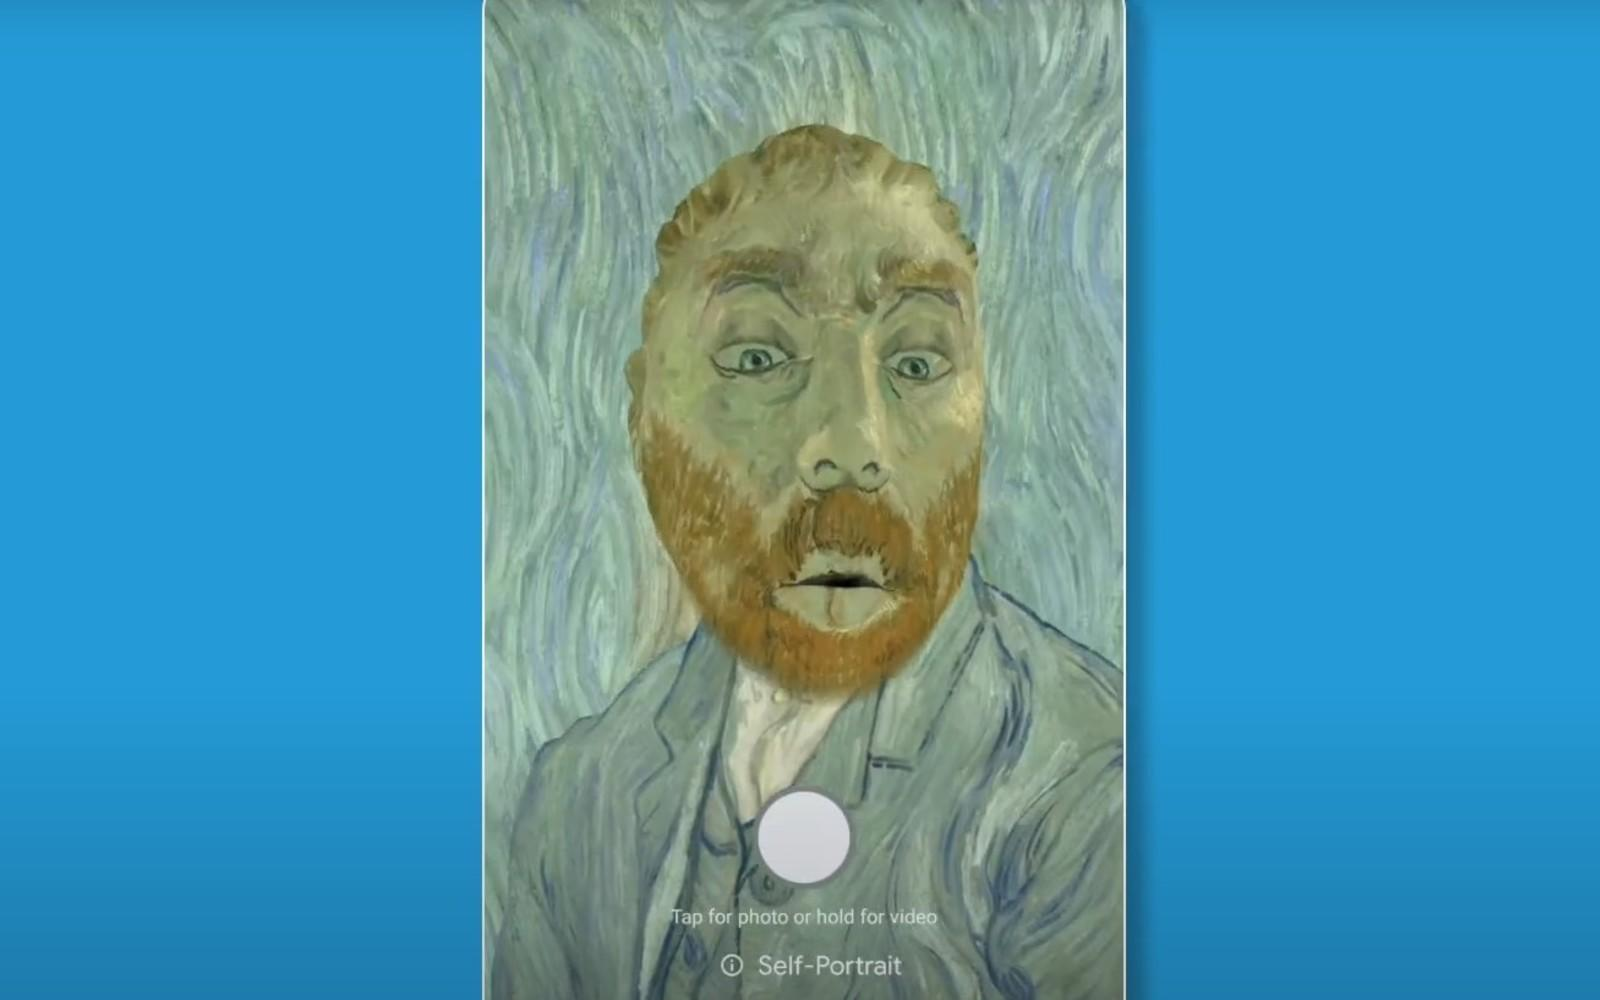 Google Arts & Culture app lets you turn yourself into a Van Gogh painting | Engadget